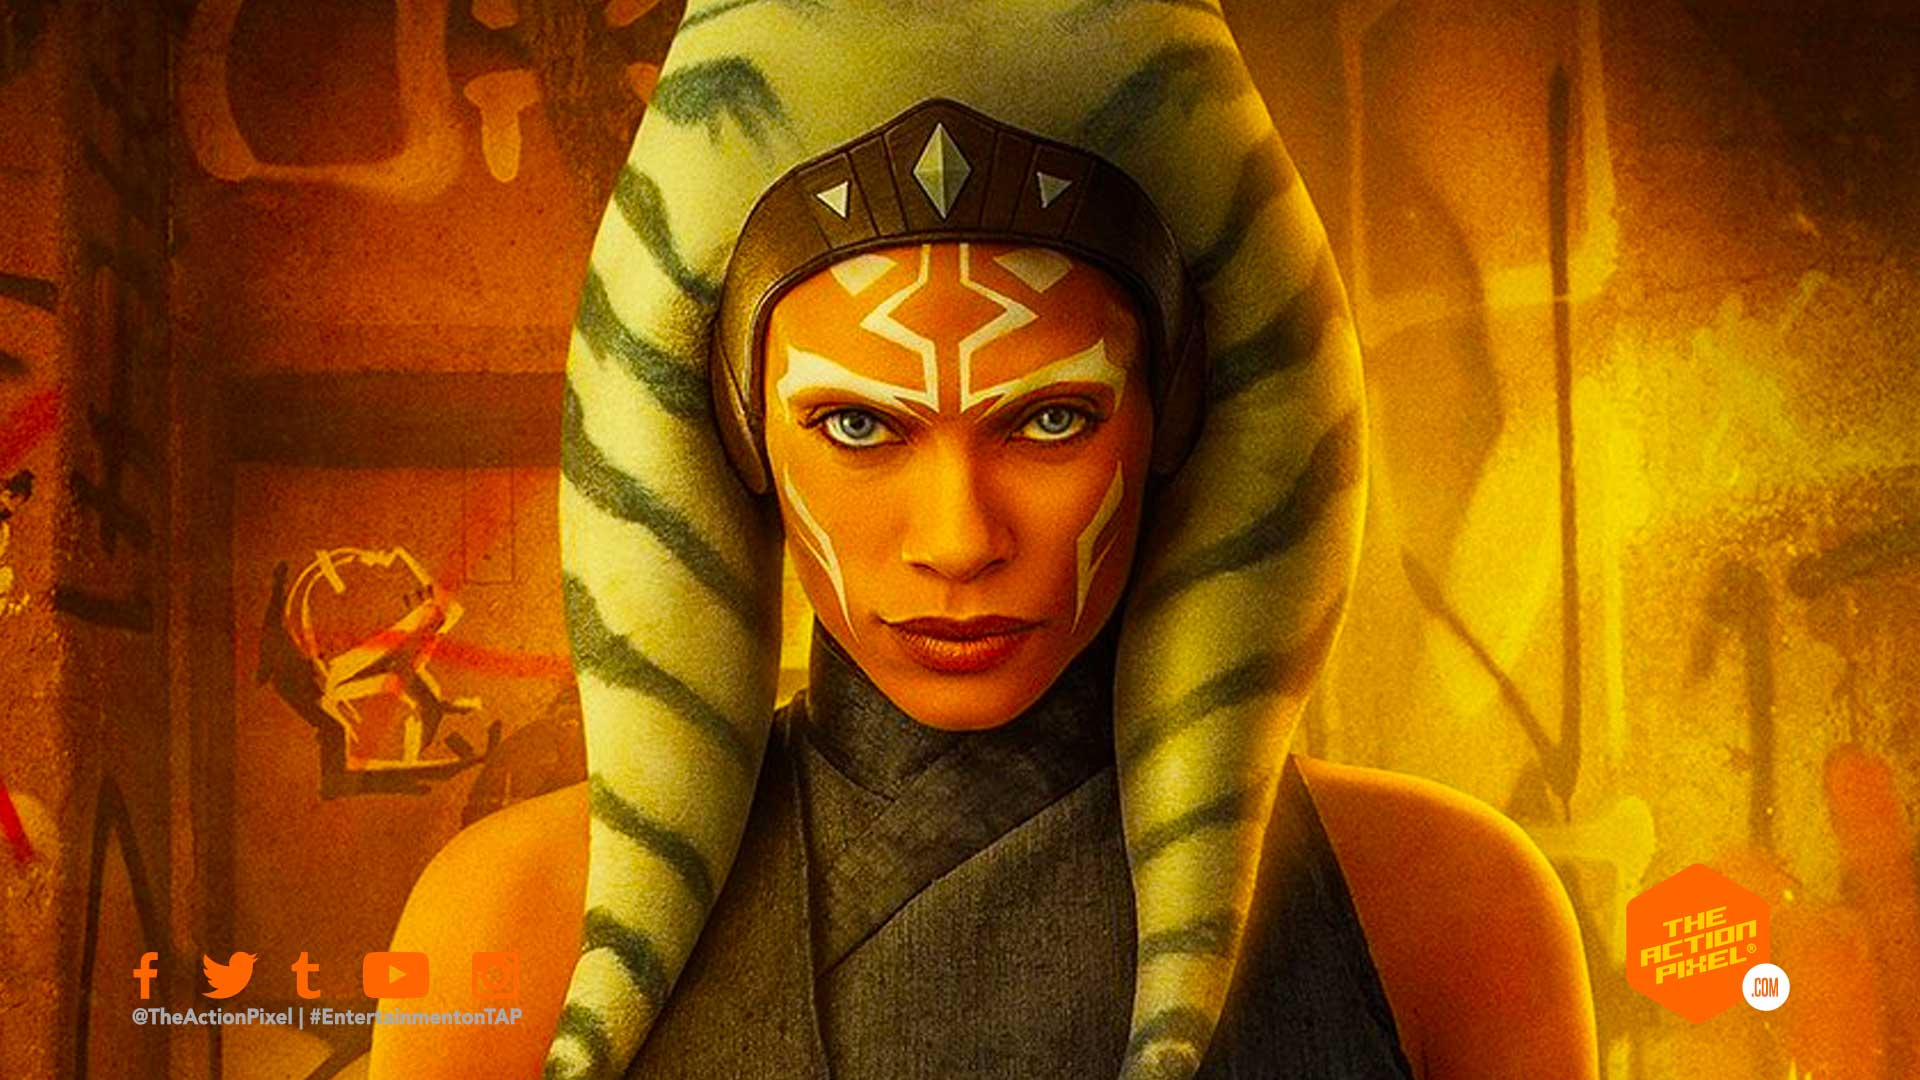 ahsoka tano, star wars, the mandalorian, the mandalorian season 2, entertainment on tap, rosario dawson, entertainment on tap, the action pixel,